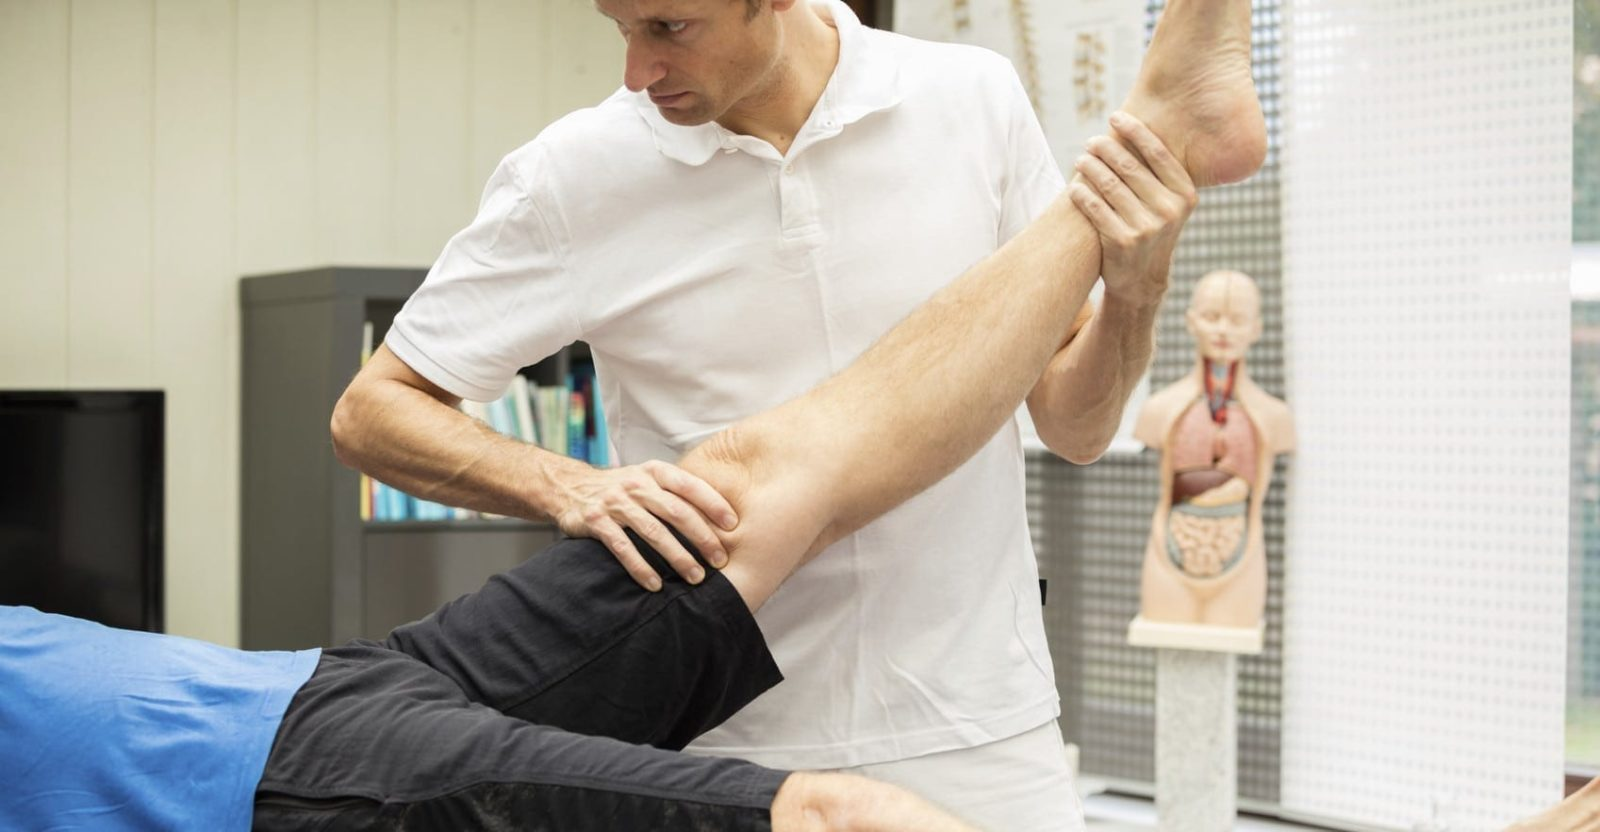 Physician Examining A Patient's Leg Stock Photo